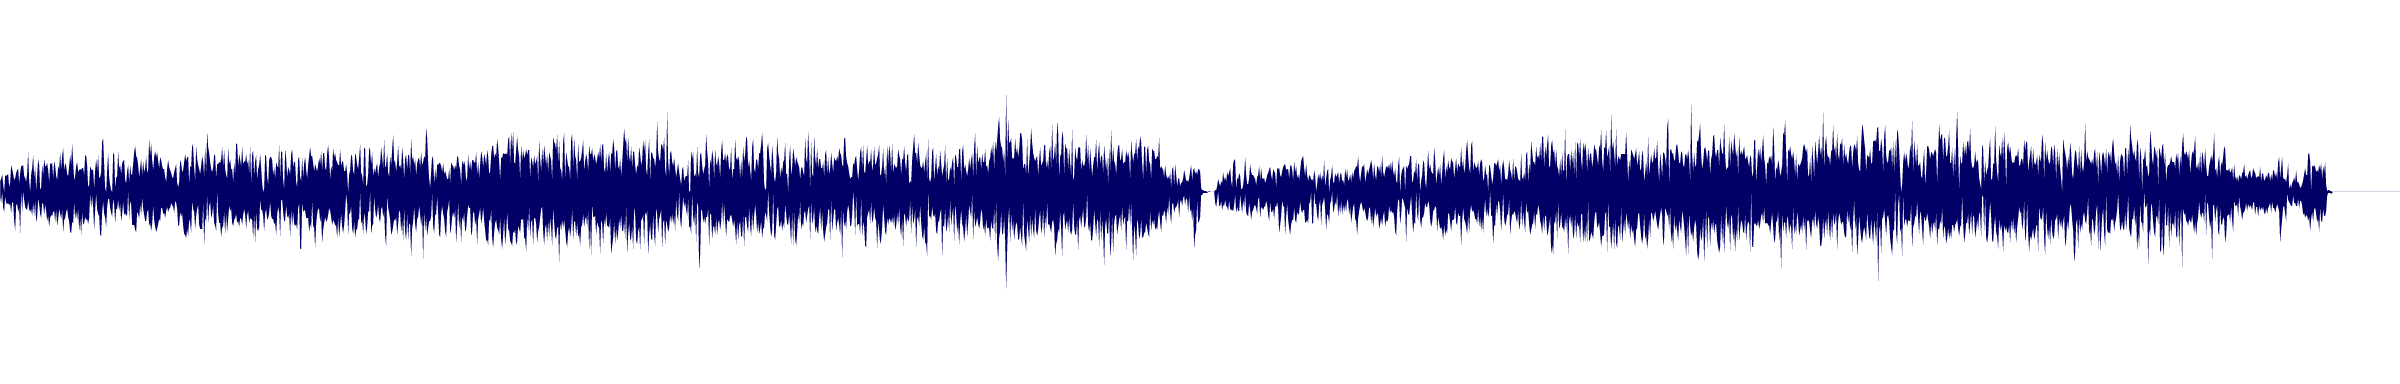 waveform of track #155020